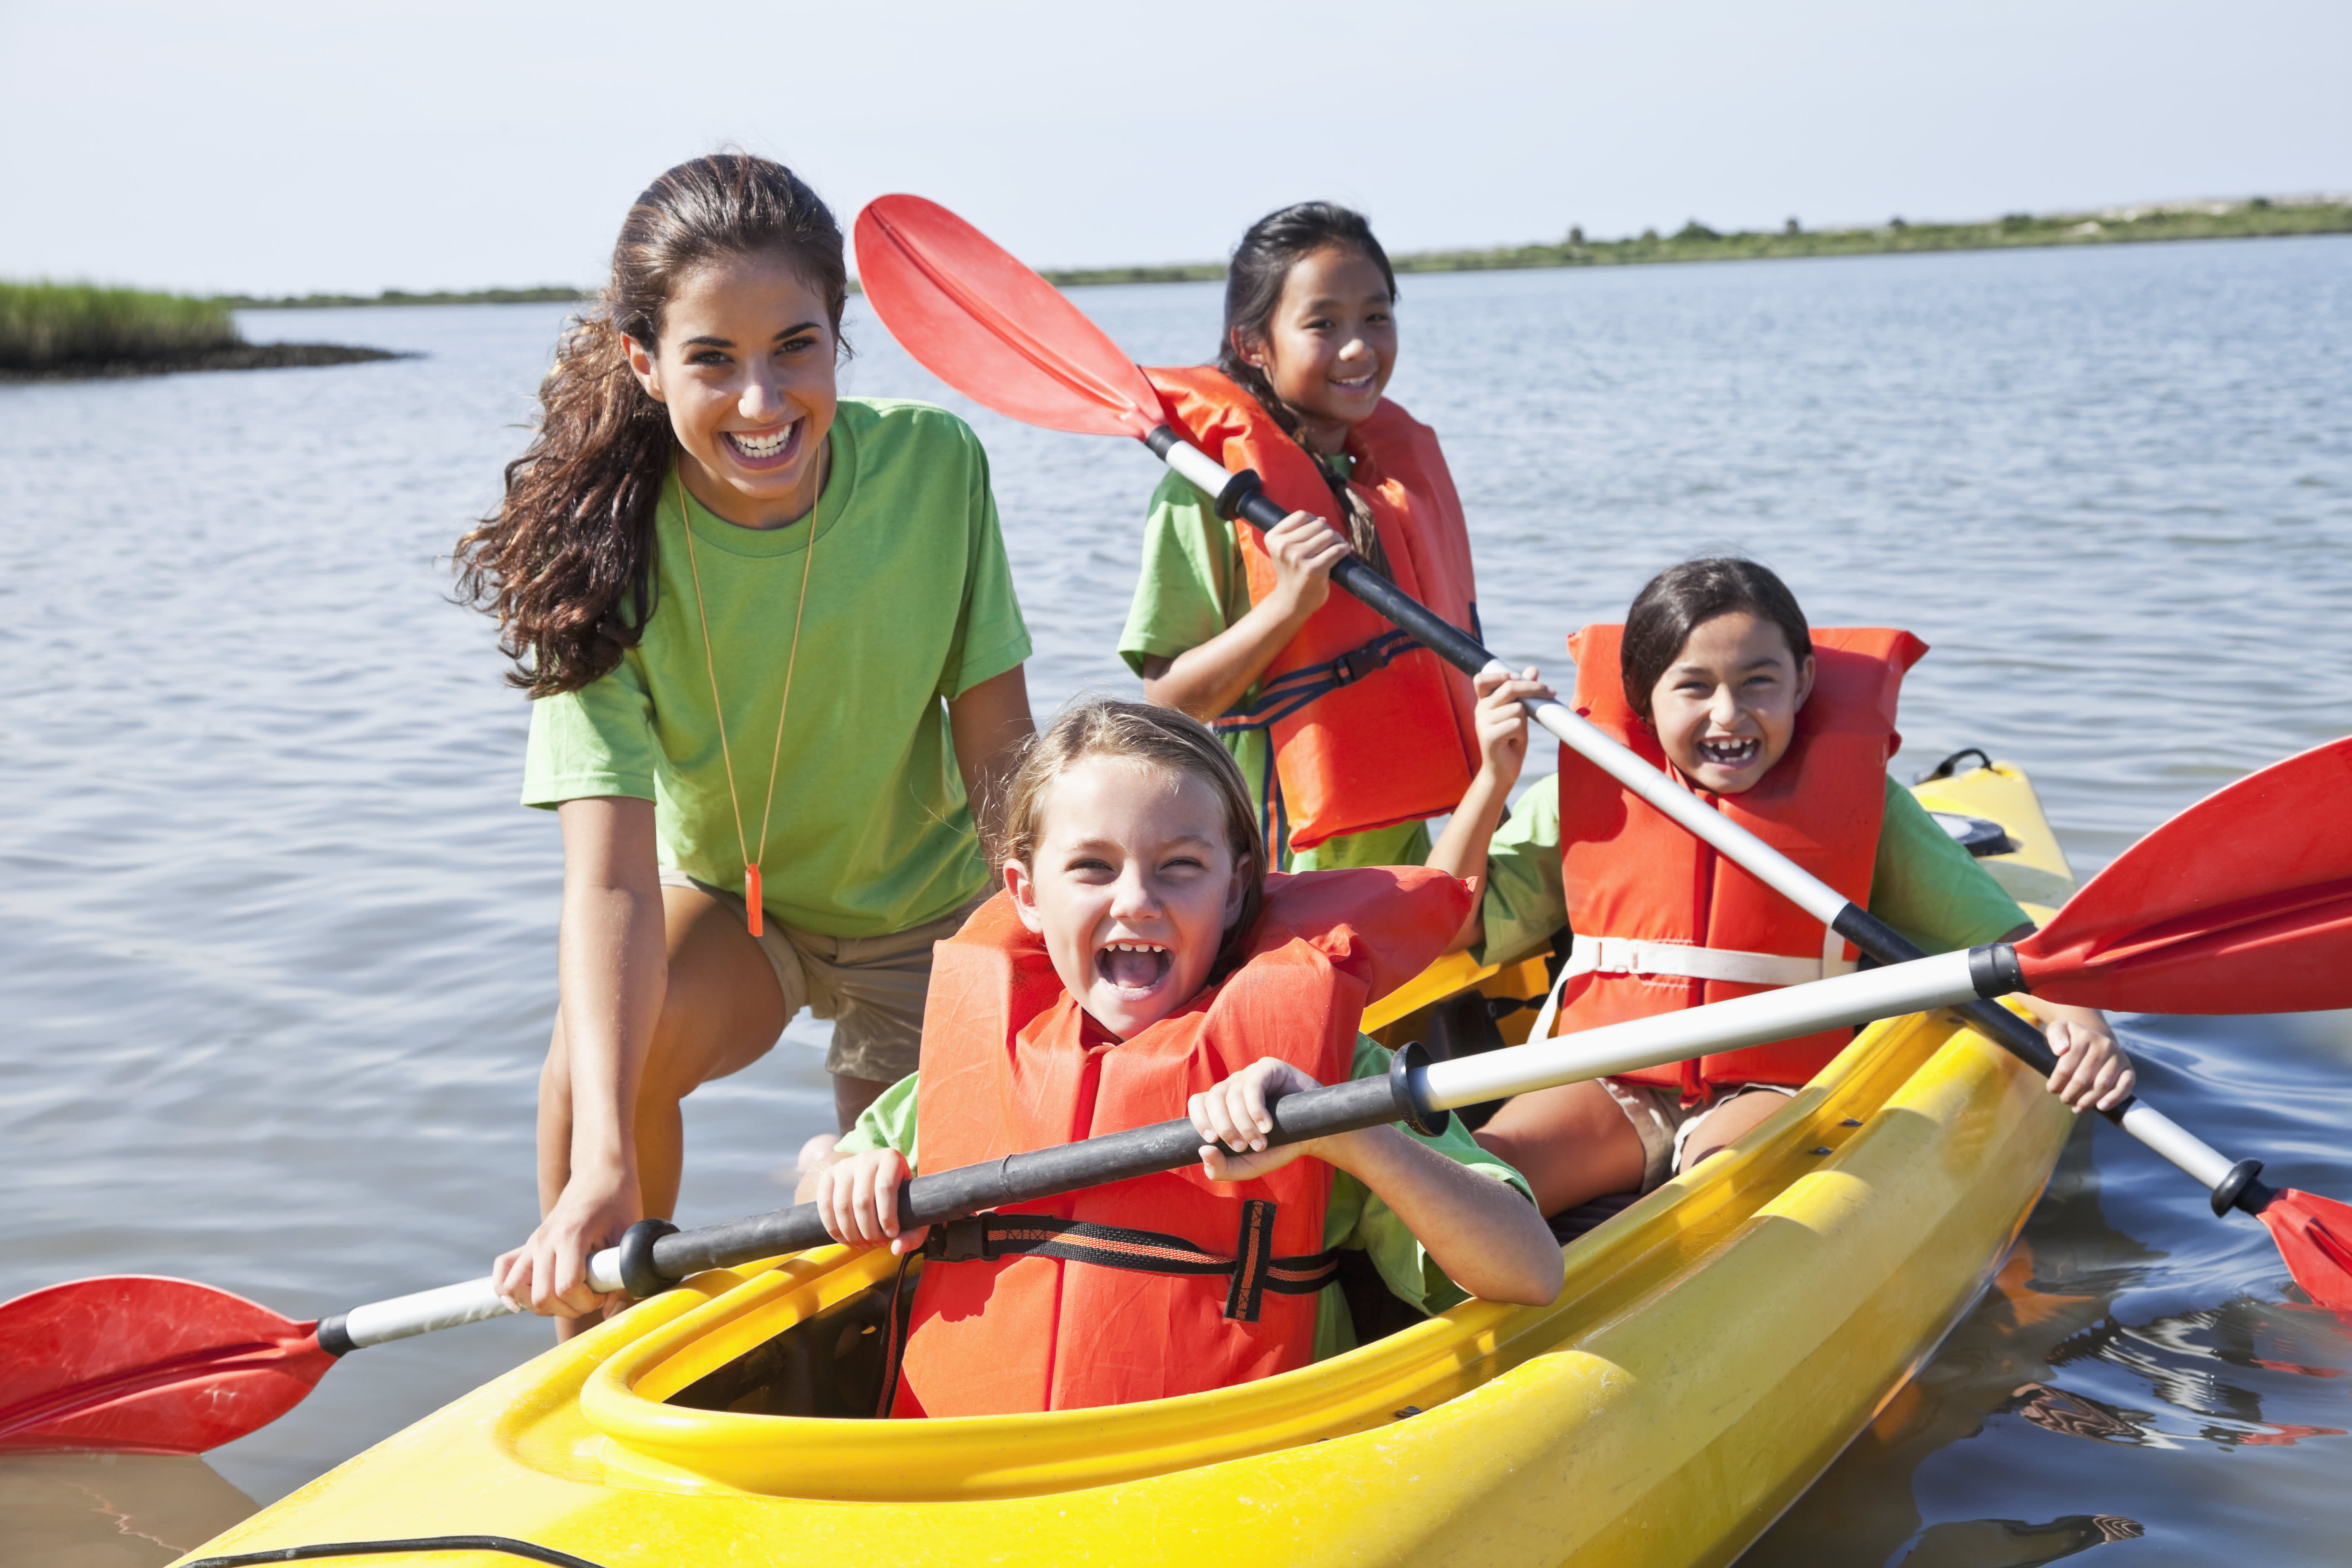 CDC eases summer camp Covid guidance, says fully vaccinated teens don't need masks